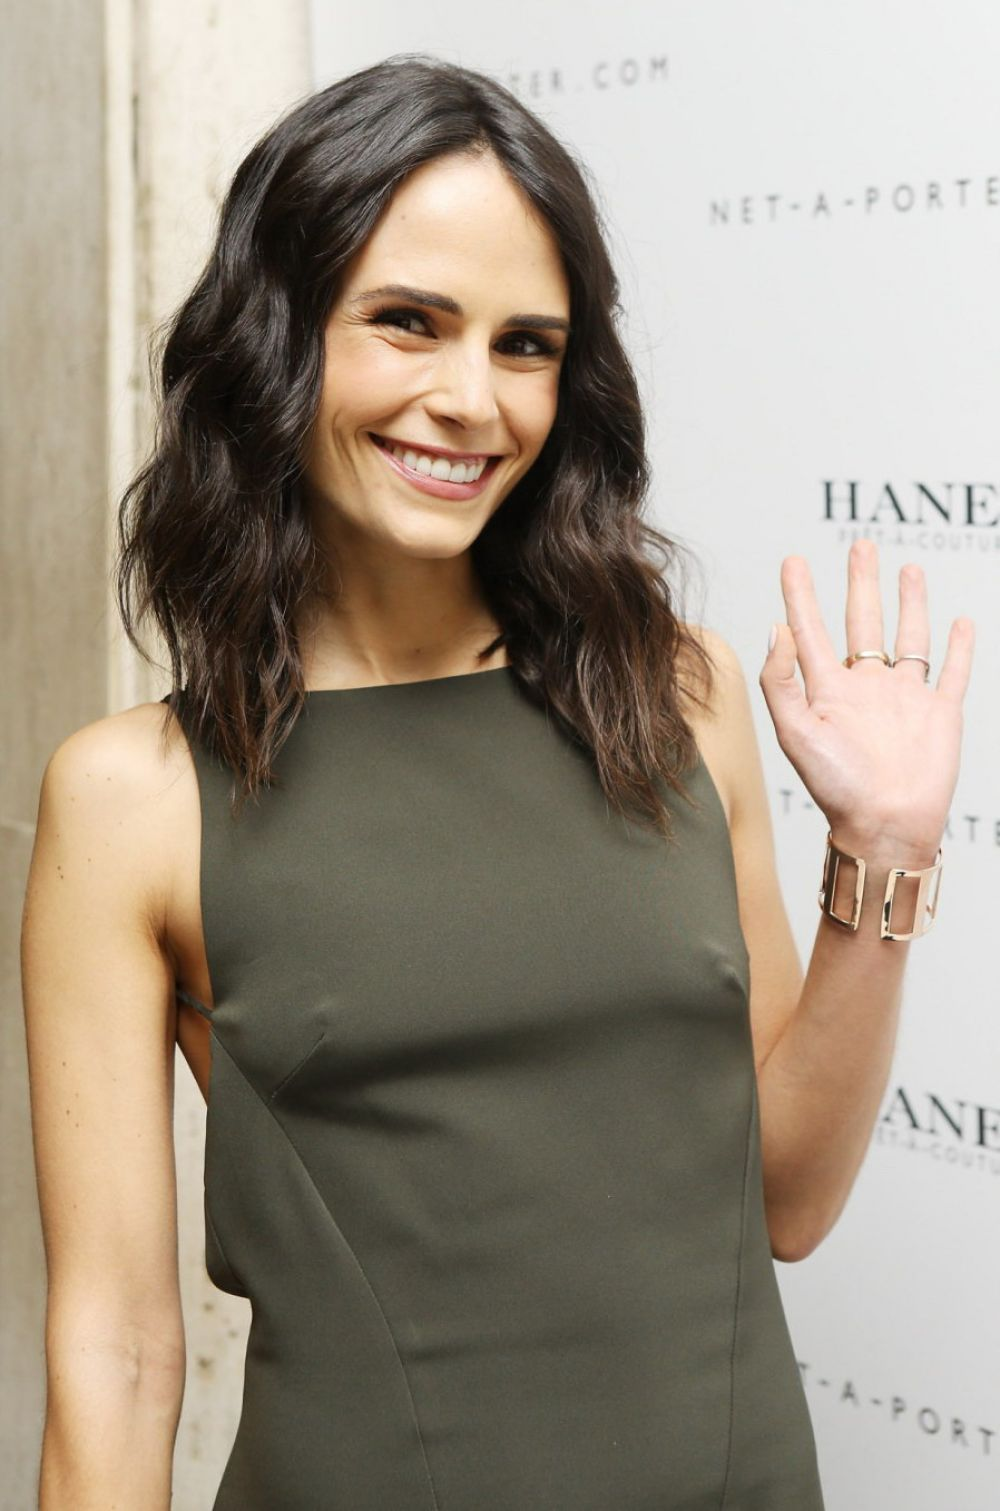 Jordana brewster at haney pret-a-couture launch in hollywood